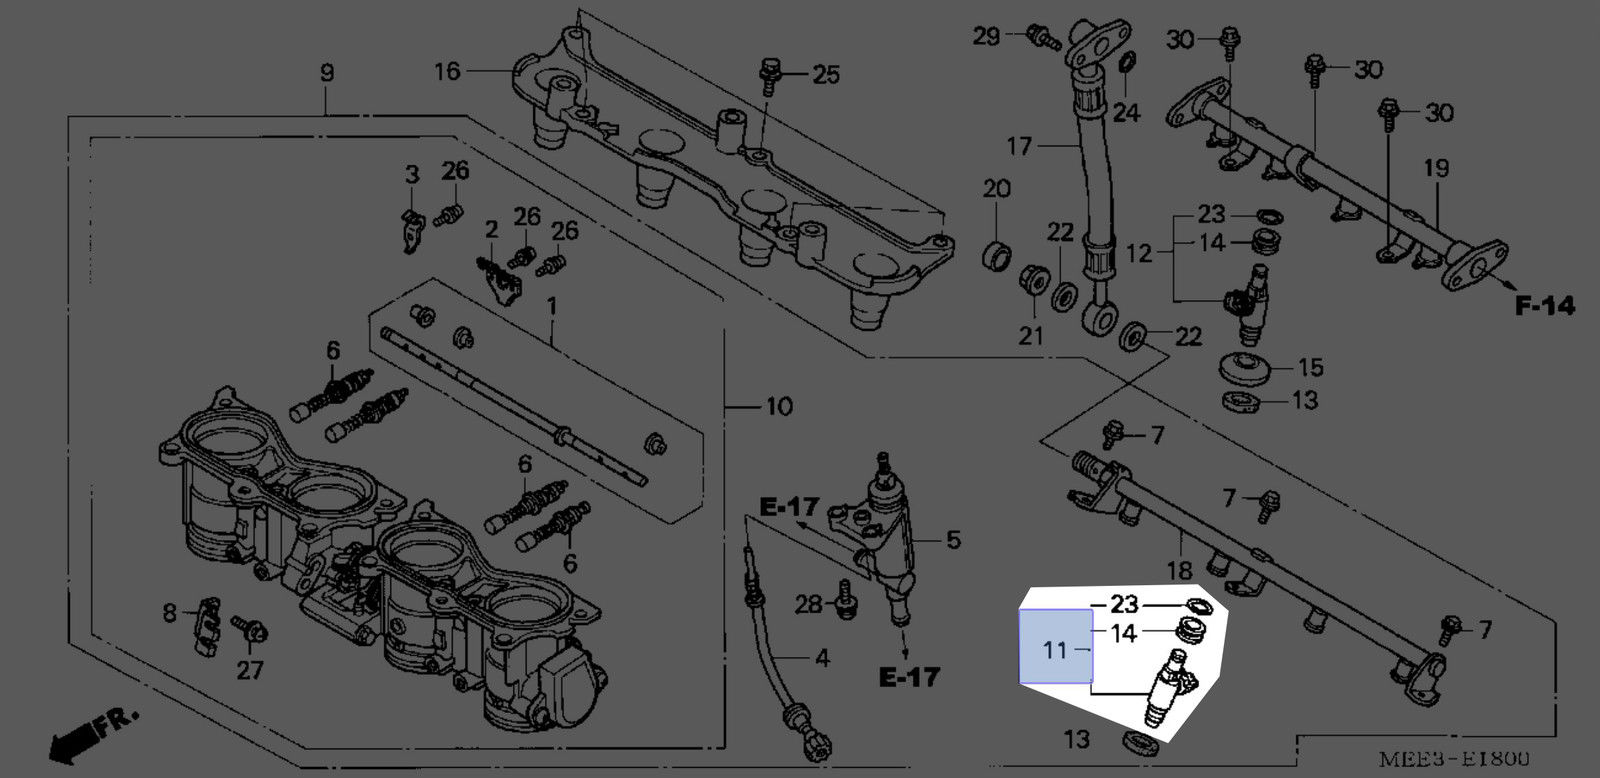 16450 Mee Honda Fuel Injector Diagram Assembly New Oem Jpeg 450x450